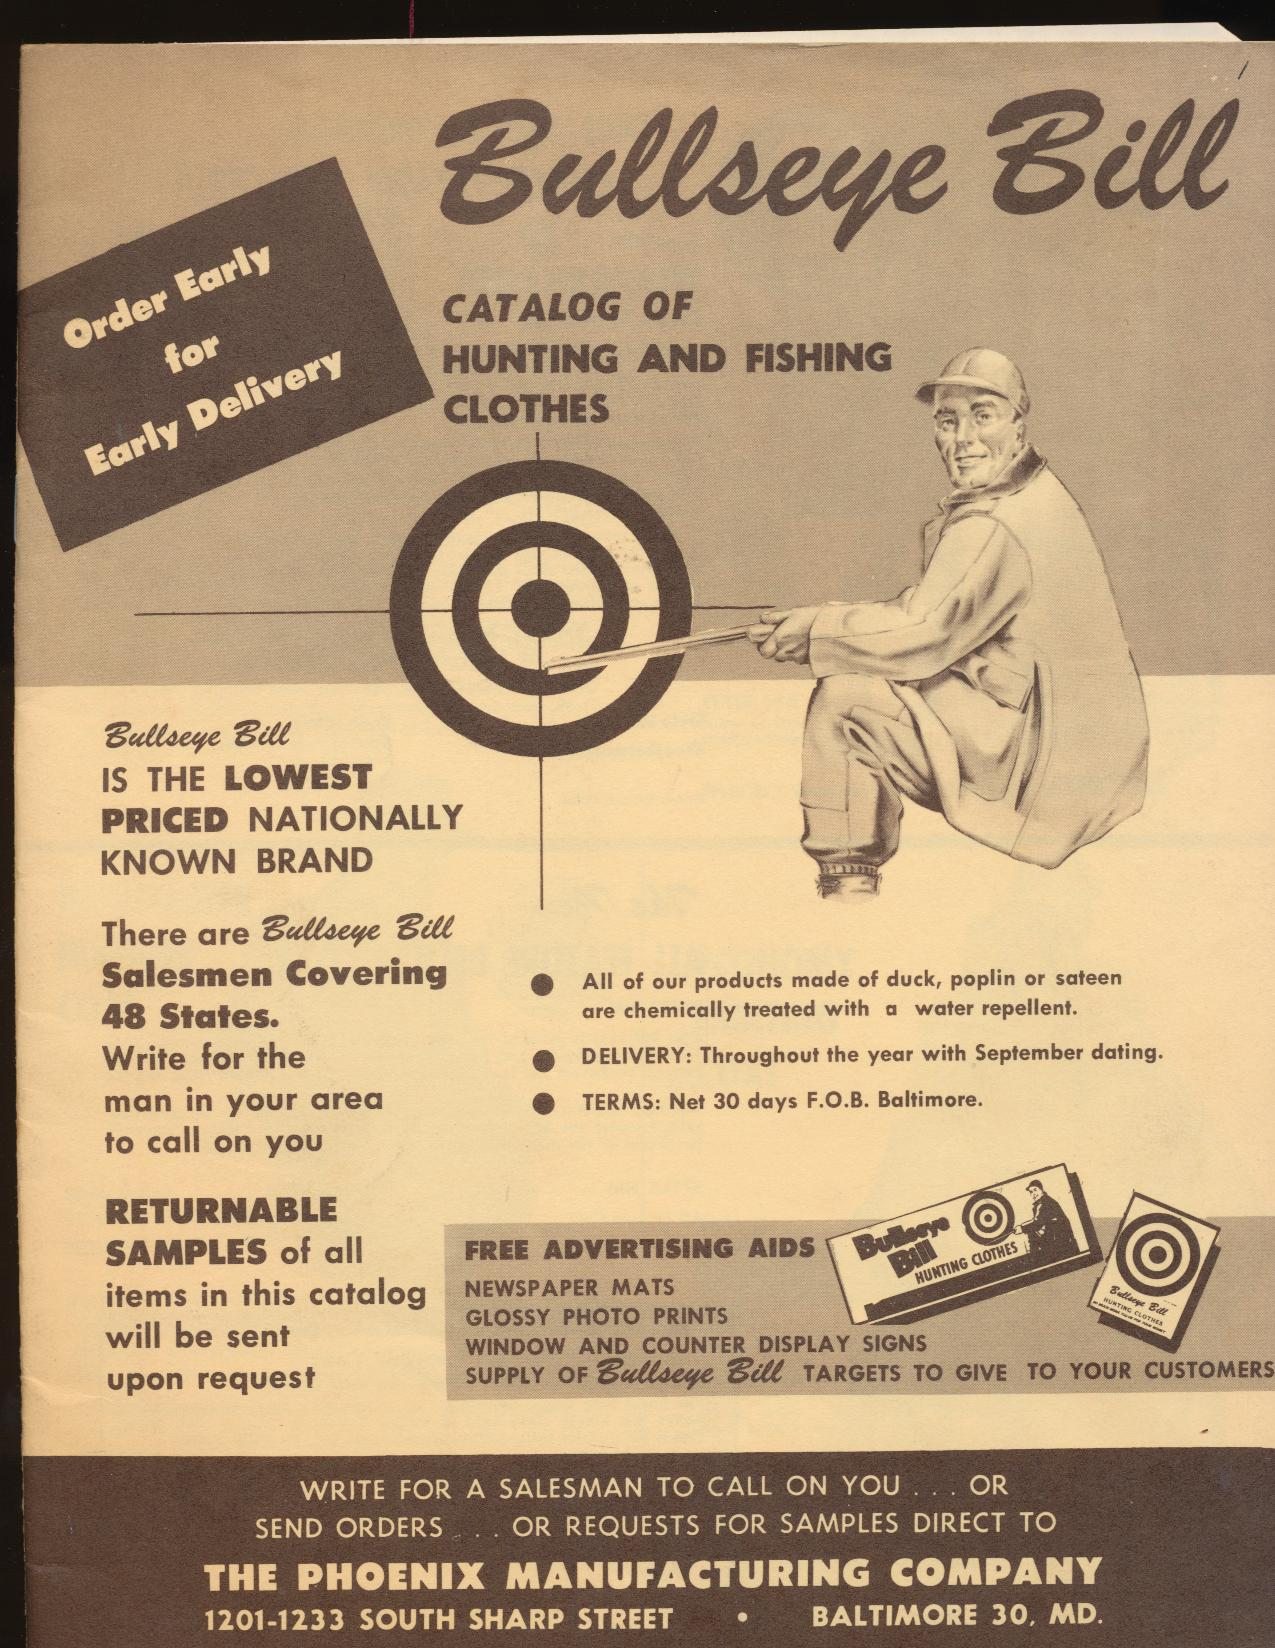 1964 Bullseye Bill Hunting/Fishing Clothes Dealer Trade Catalog